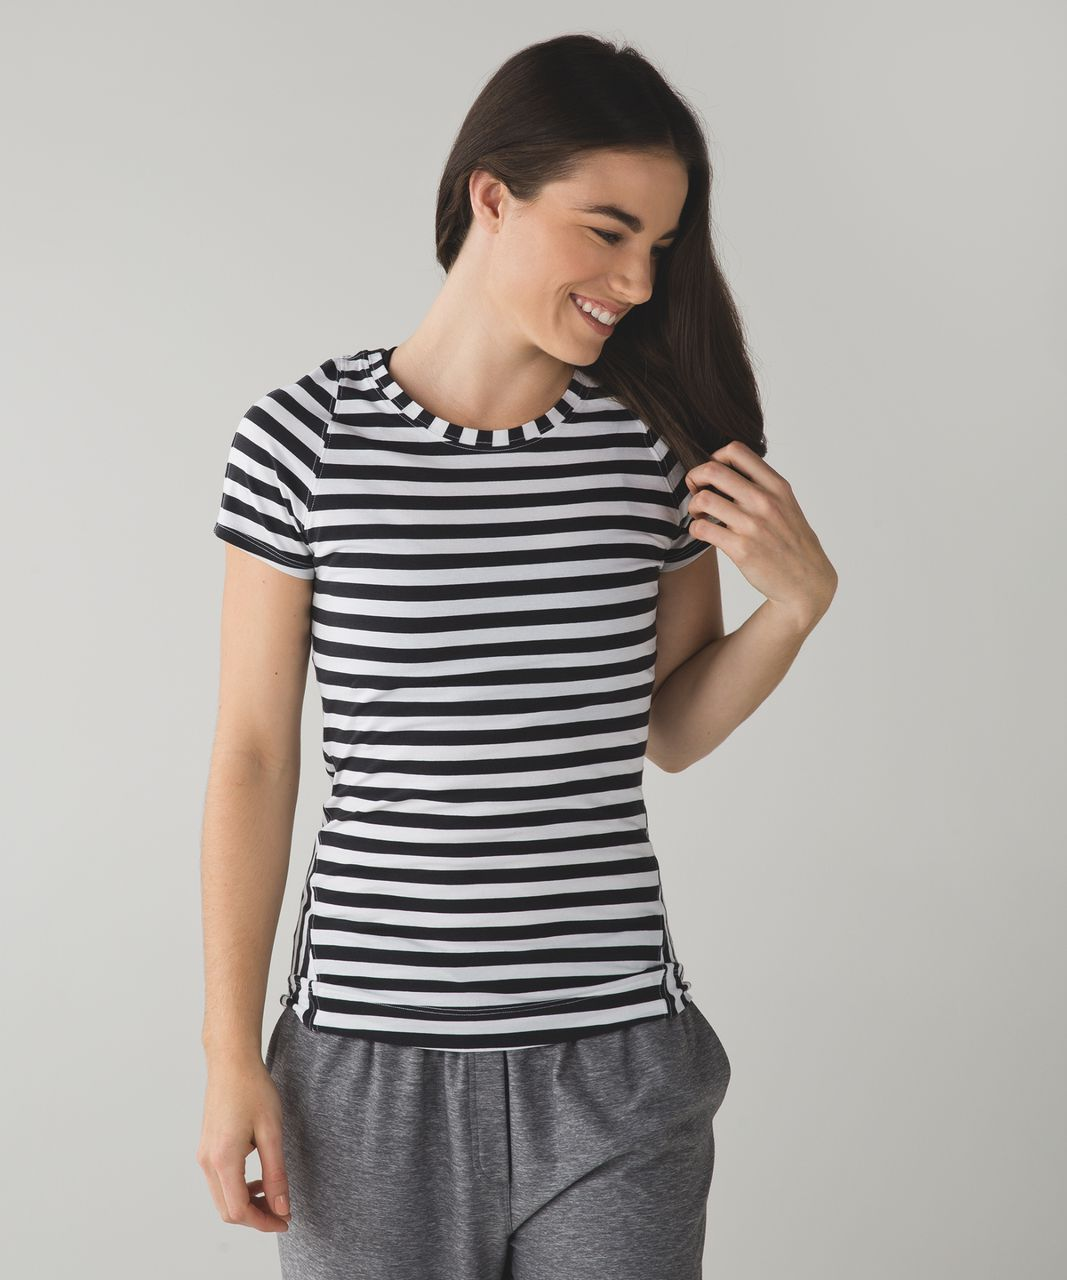 Lululemon Let Be Short Sleeve Tee - Apex Stripe Black White